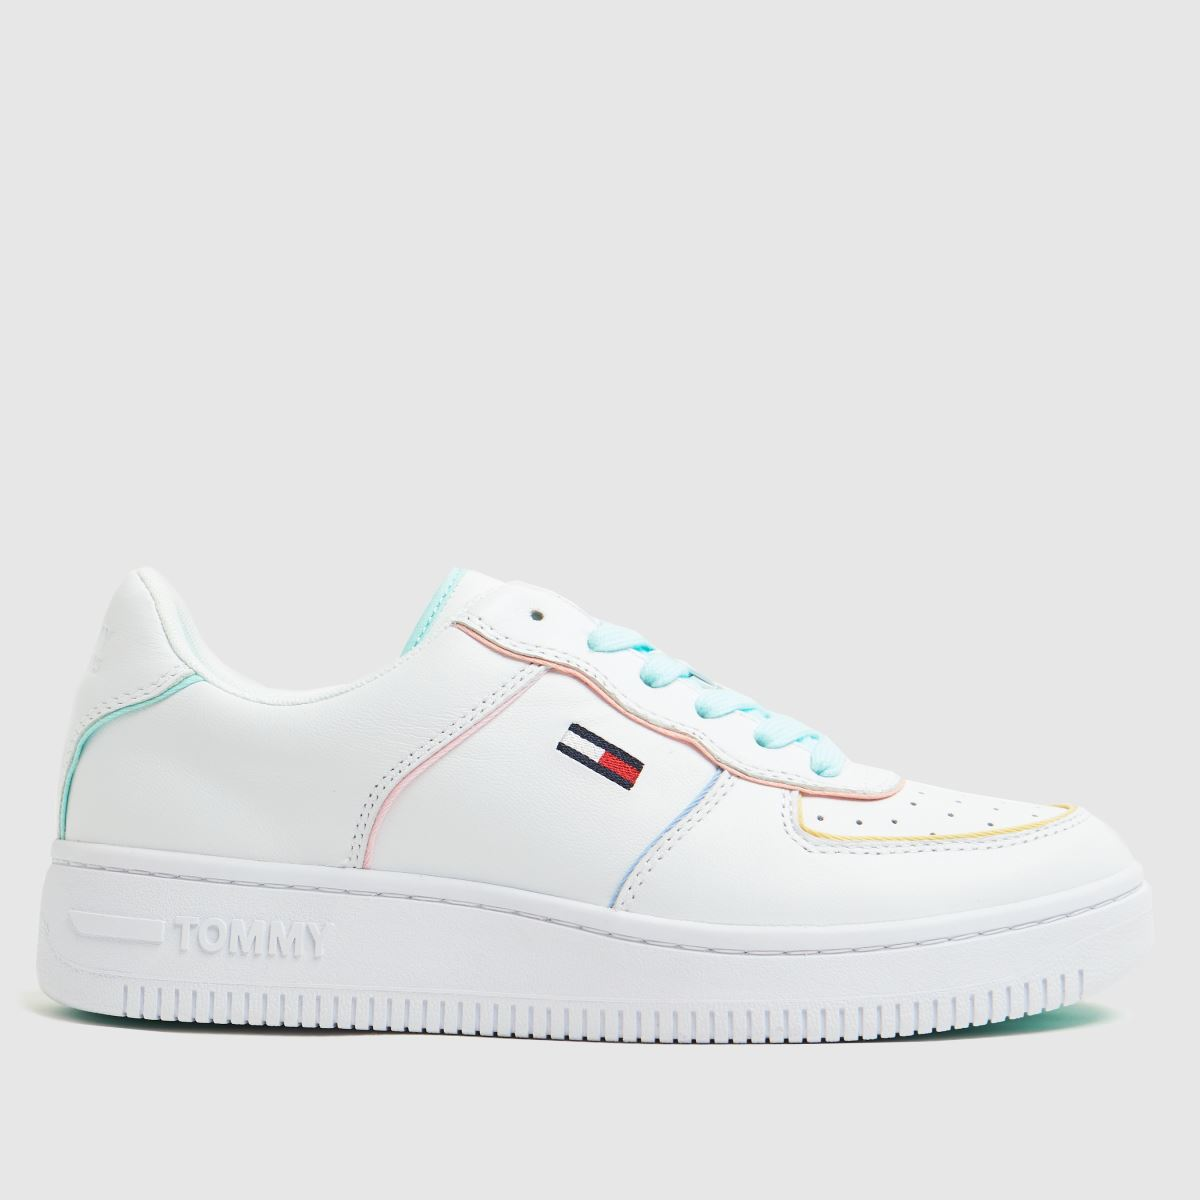 Tommy Hilfiger White & Pl Blue Abo Pastel Trainers